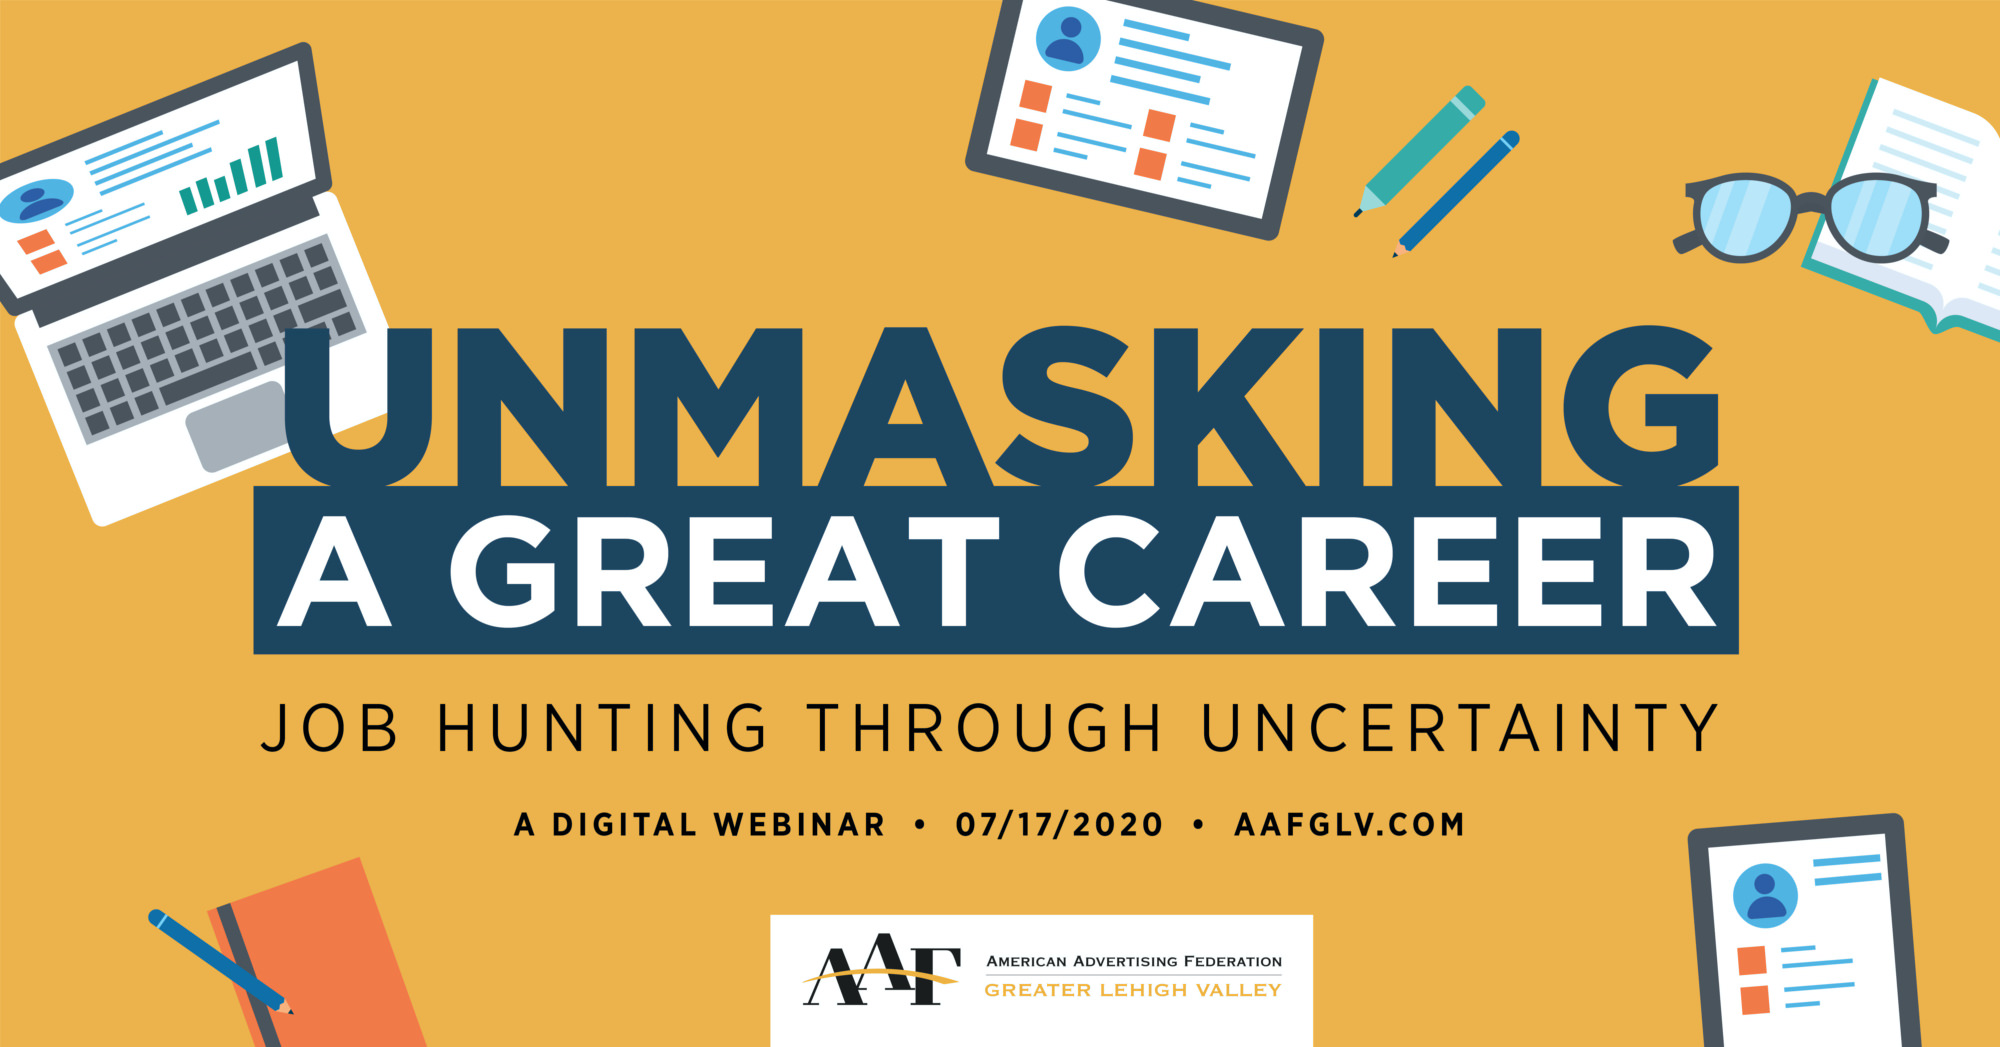 Unmasking A Great Career